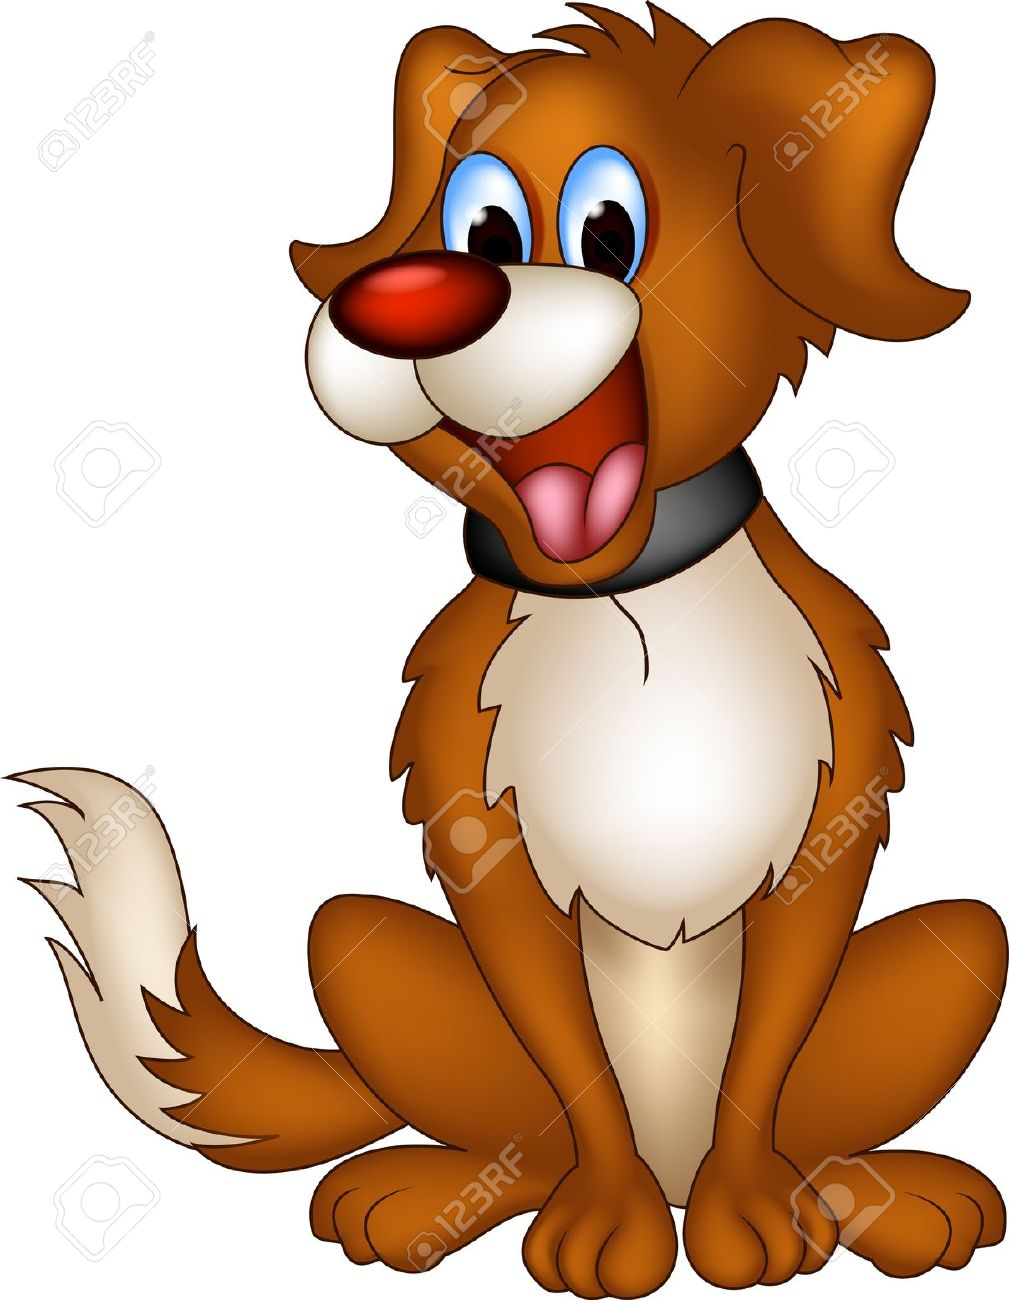 Dog smiling clipart with hearts png transparent stock 14,194 Dog Smiling Stock Vector Illustration And Royalty Free Dog ... png transparent stock